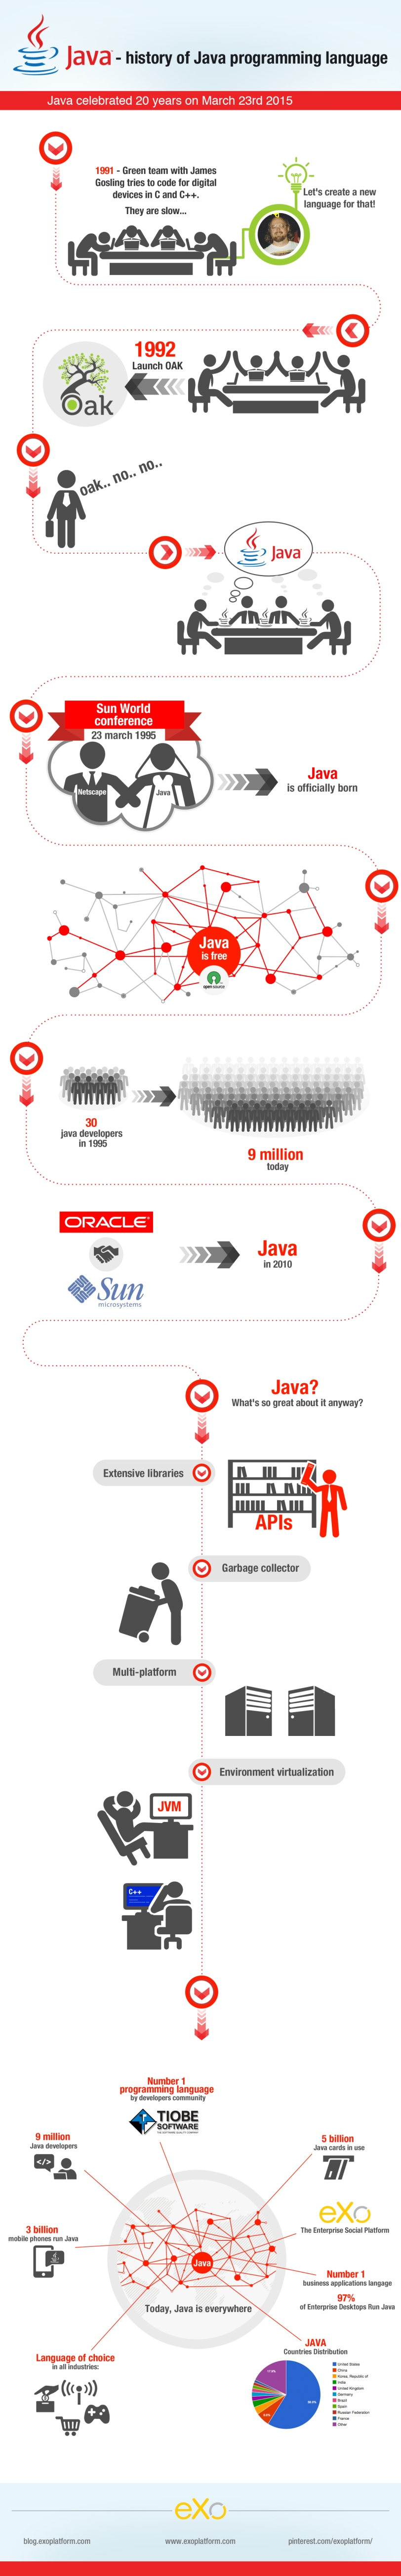 The History of the Java Programming Language